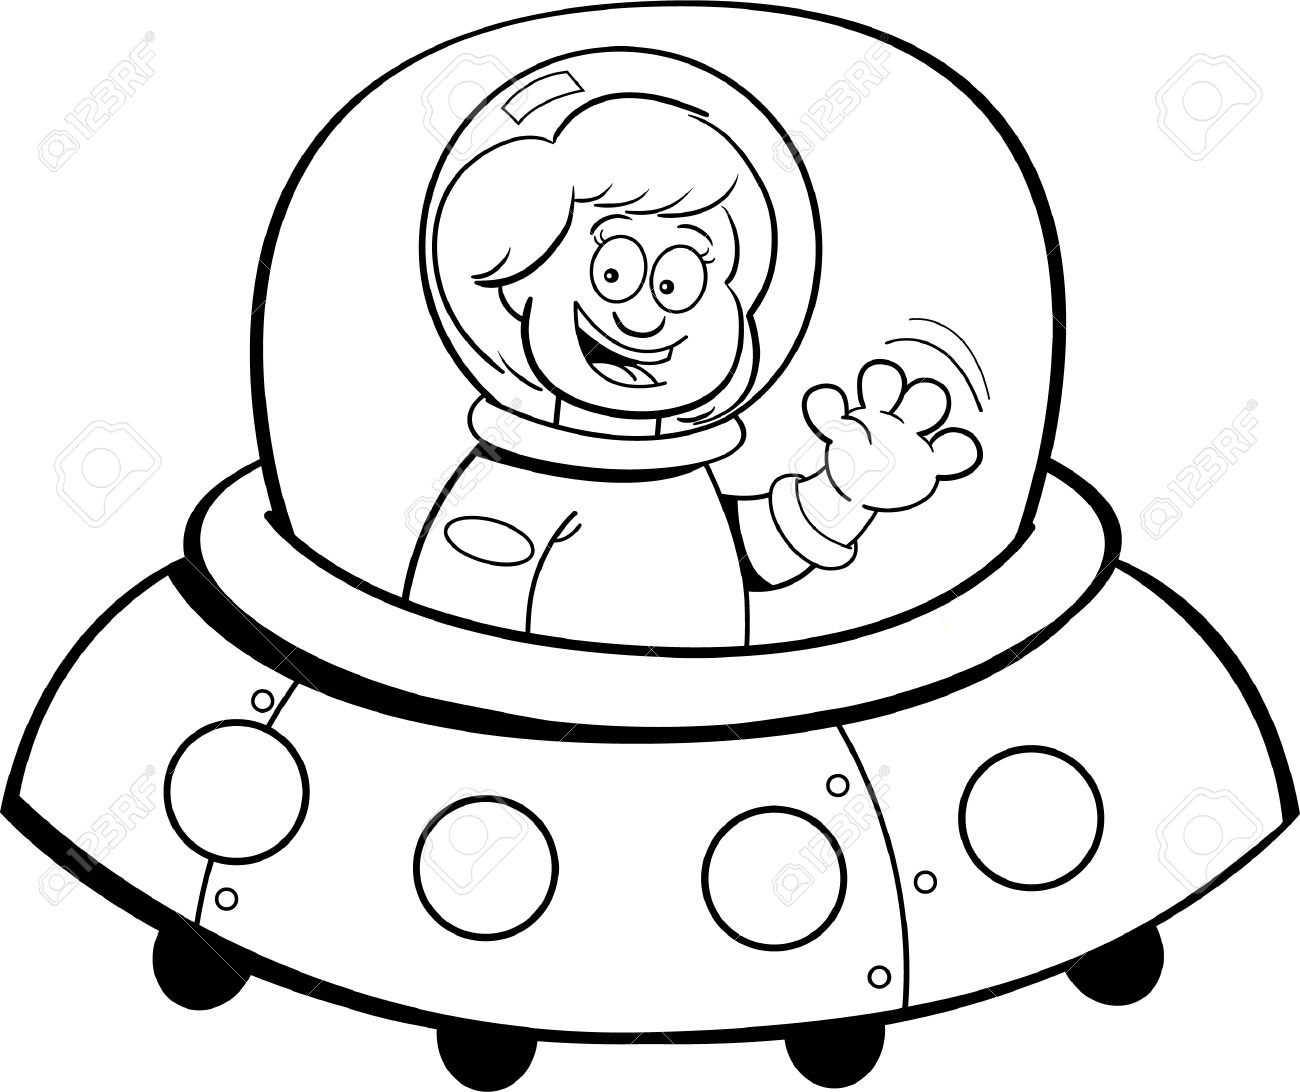 Space Clipart Black And White | Free download on ClipArtMag